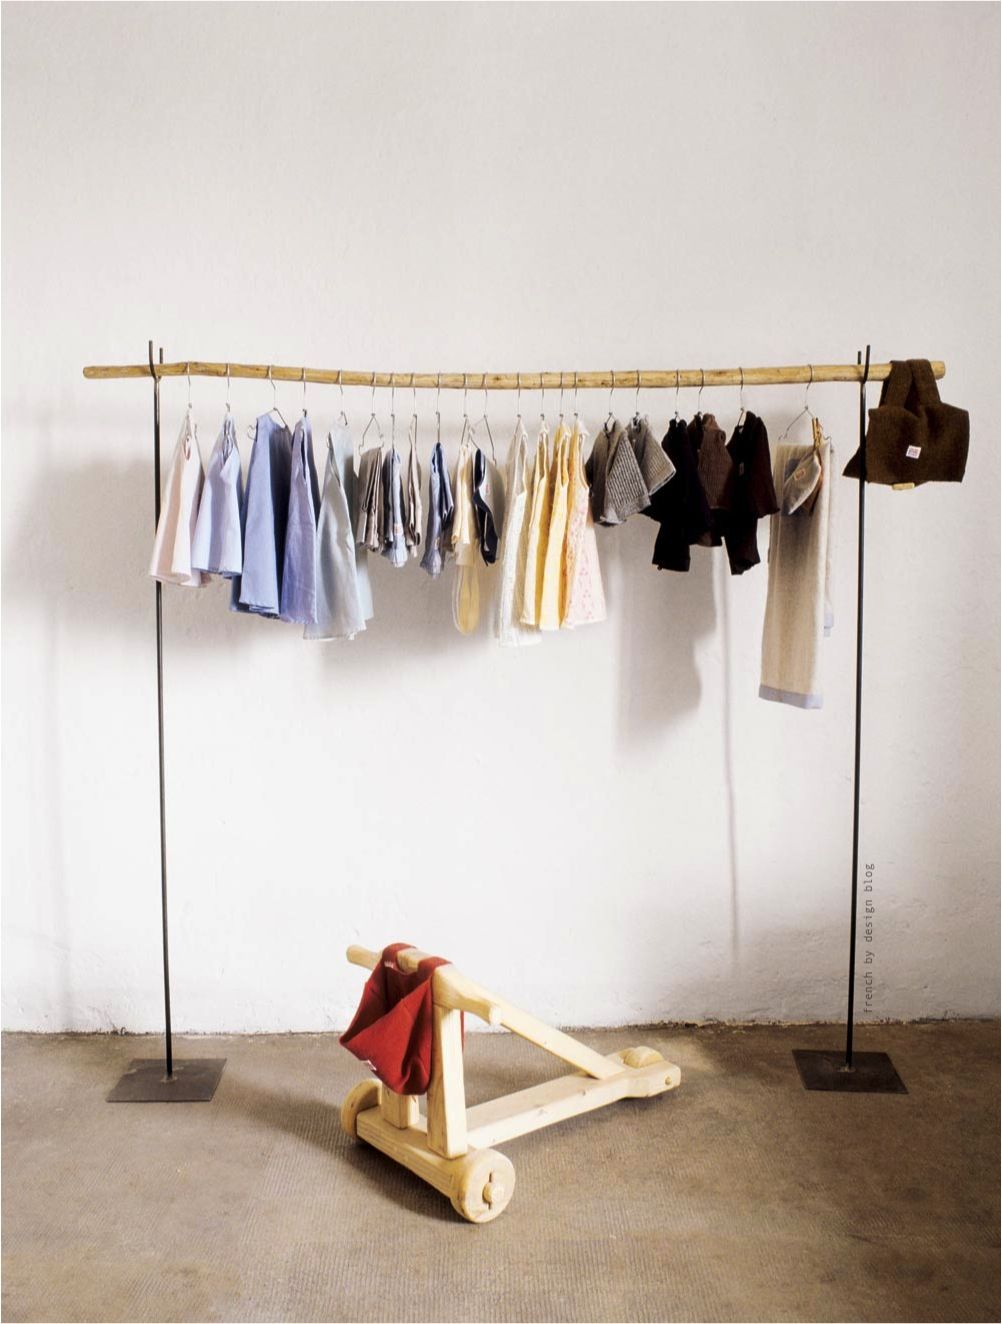 Baby room storage rustic minimal eco friendly hanger for Clothes hanging ideas for small spaces